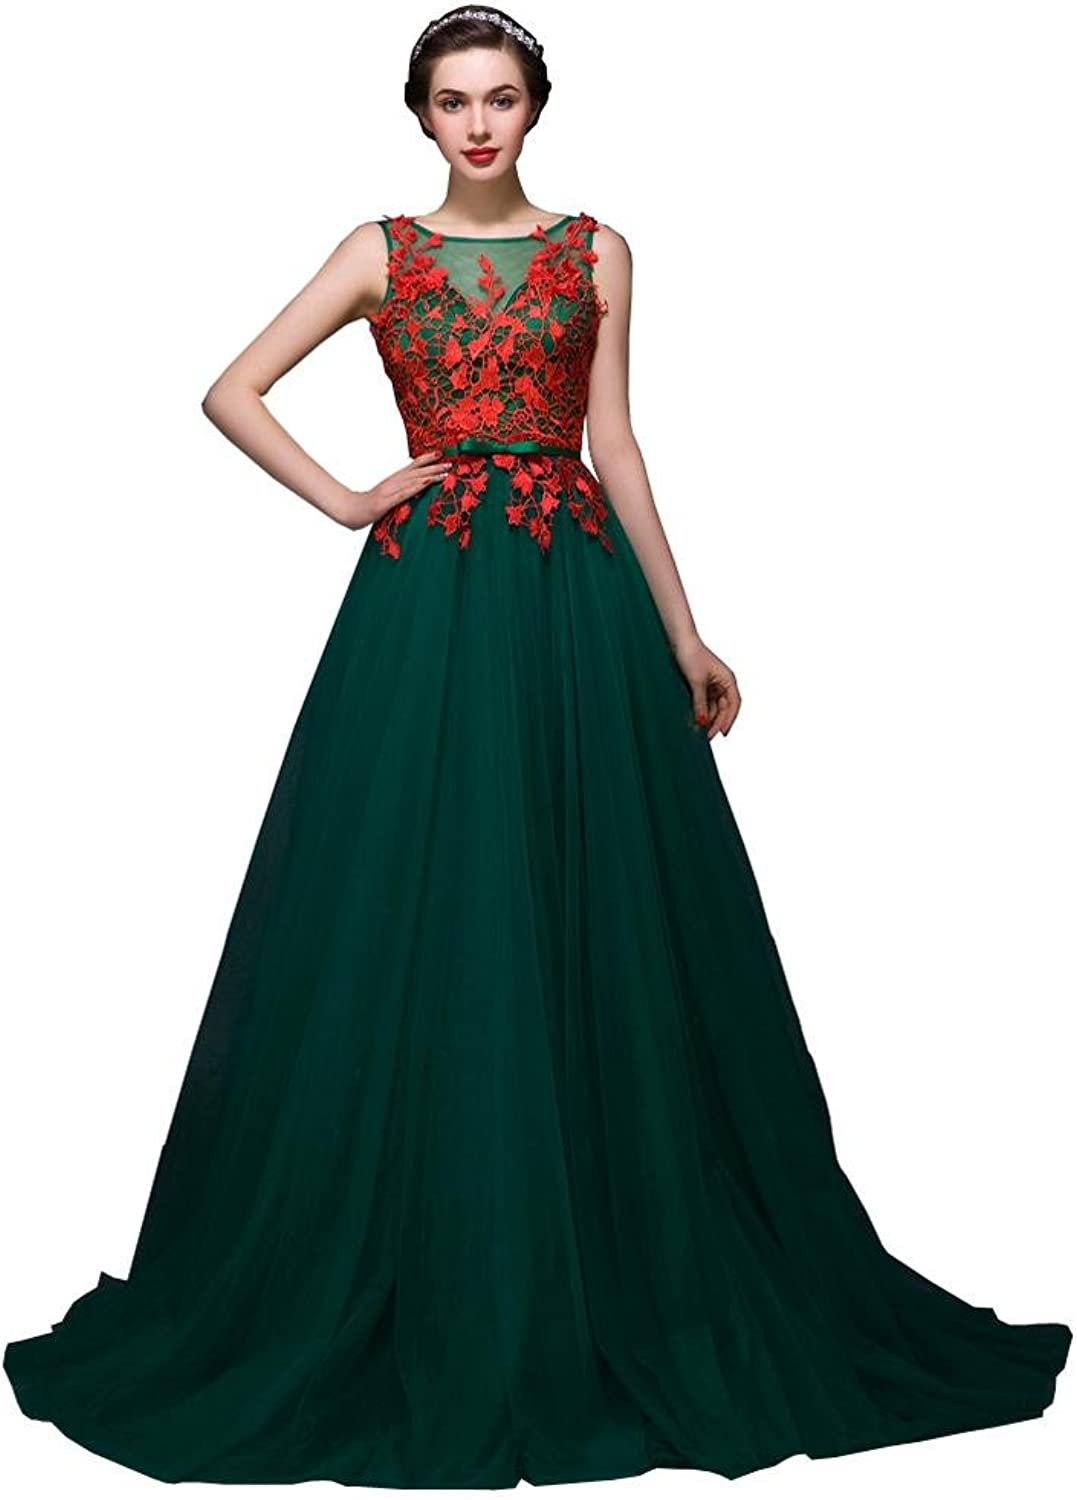 BeautyEmily Lace Hollow Out Sleeveless V Neck Evening Dresses